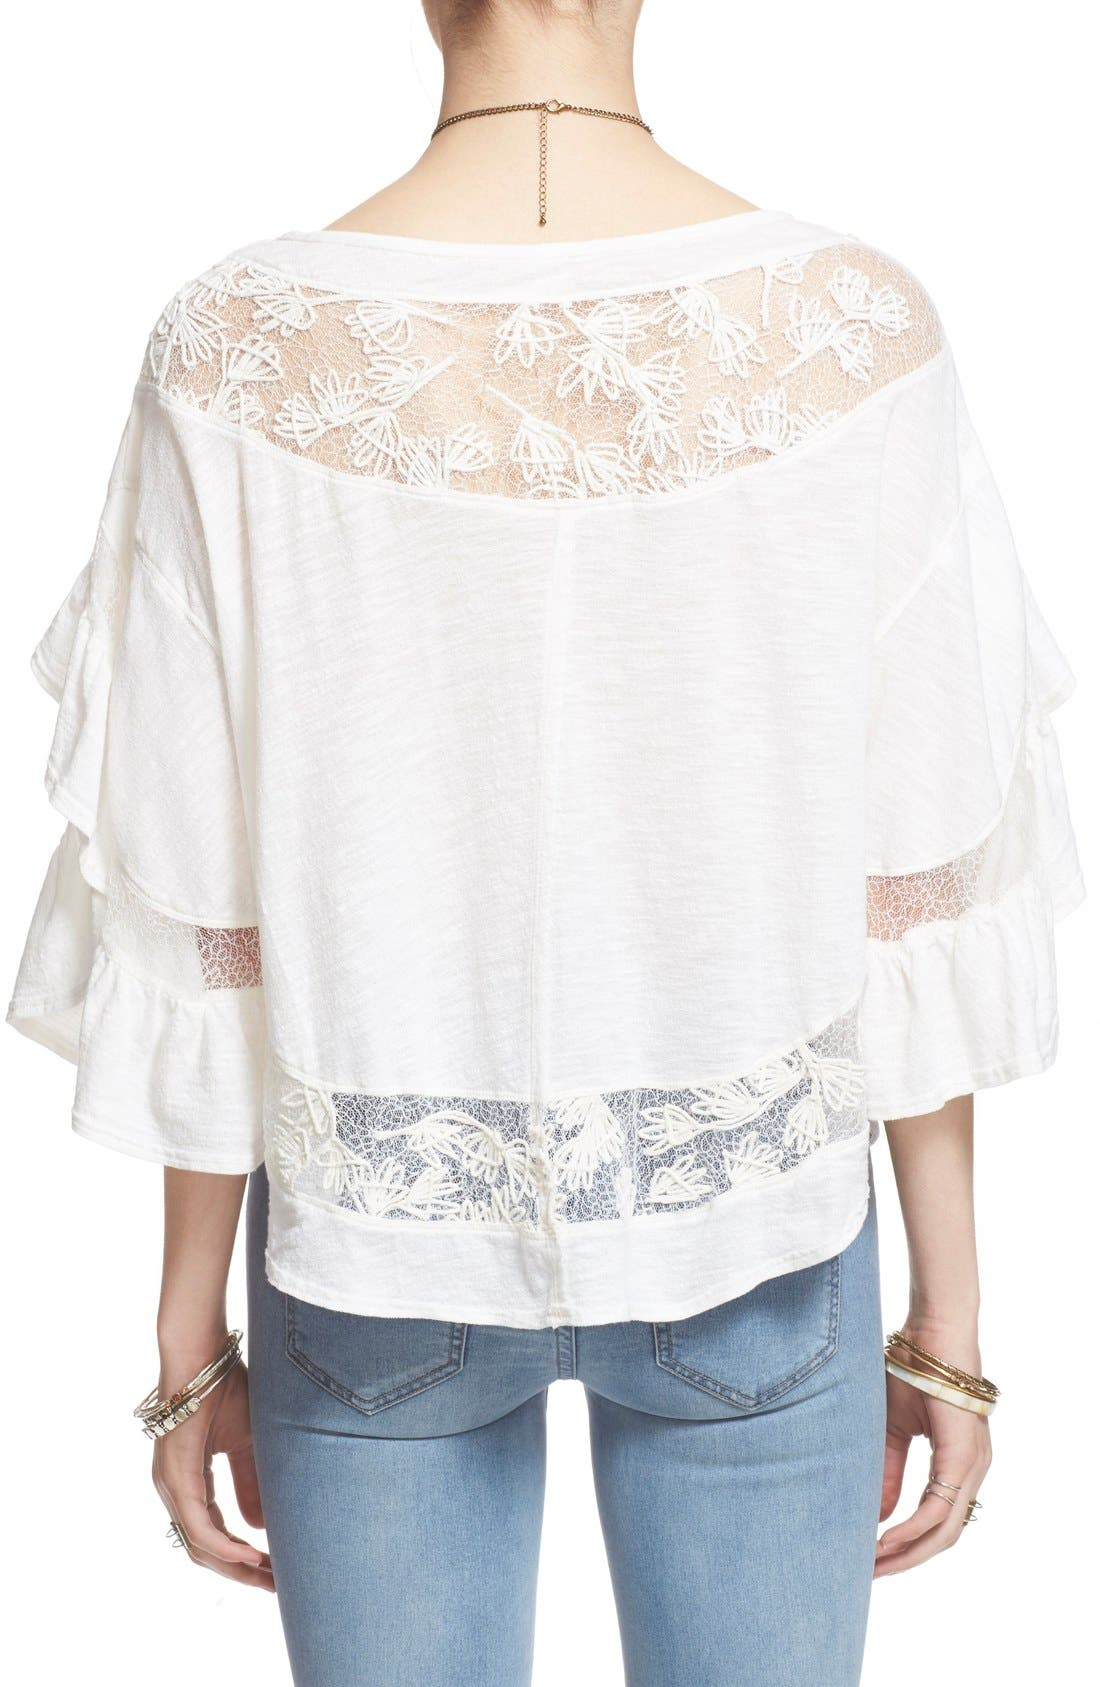 'Love Affair' Lace Inset Knit Top,                             Alternate thumbnail 3, color,                             Ivory